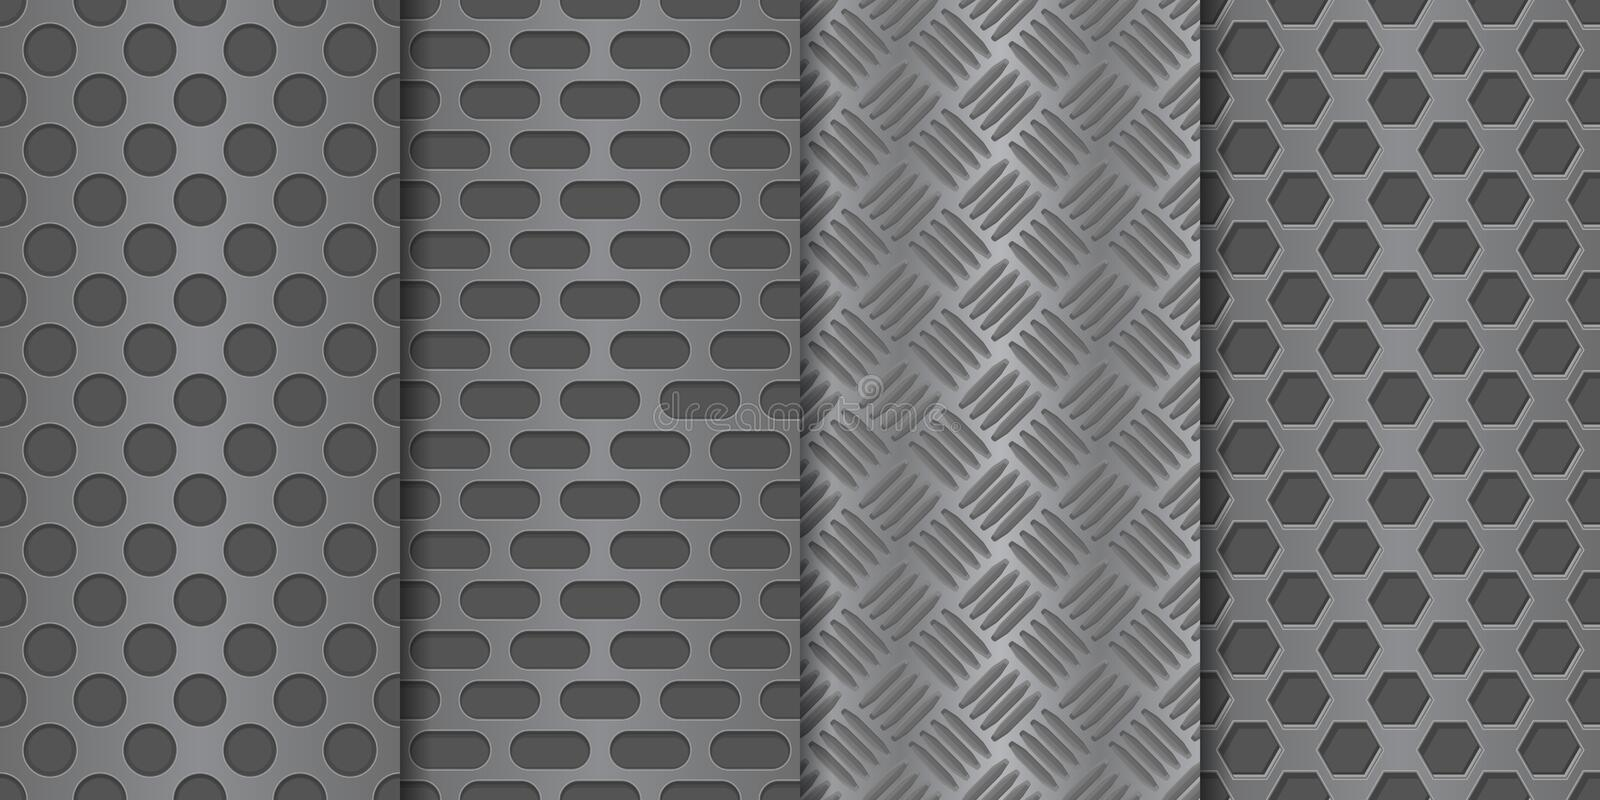 Metal perforated background. Seamless pattern royalty free illustration